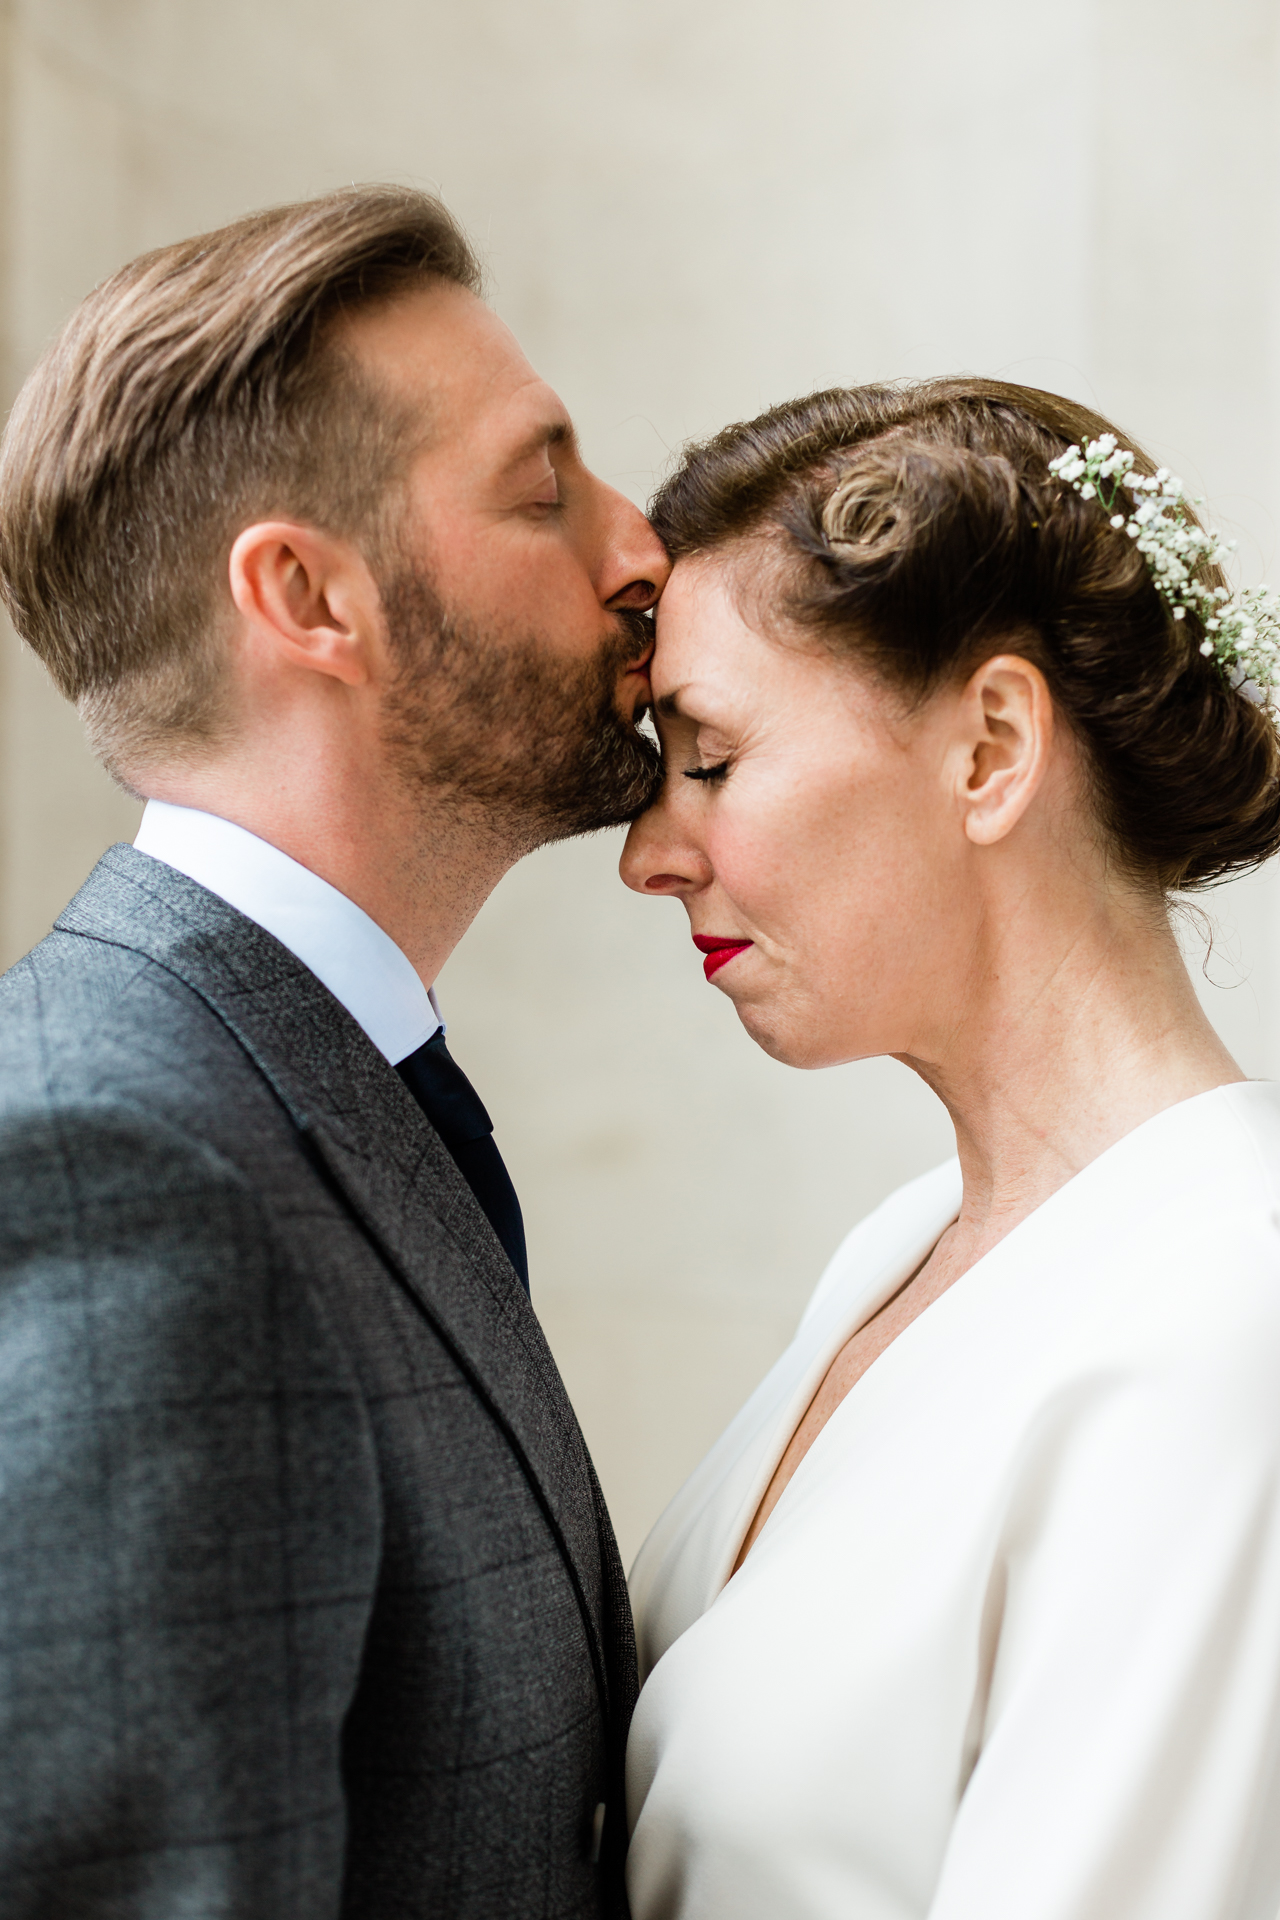 London Wedding Elopement Portrait | An intimate and loving shot for a beautiful couple